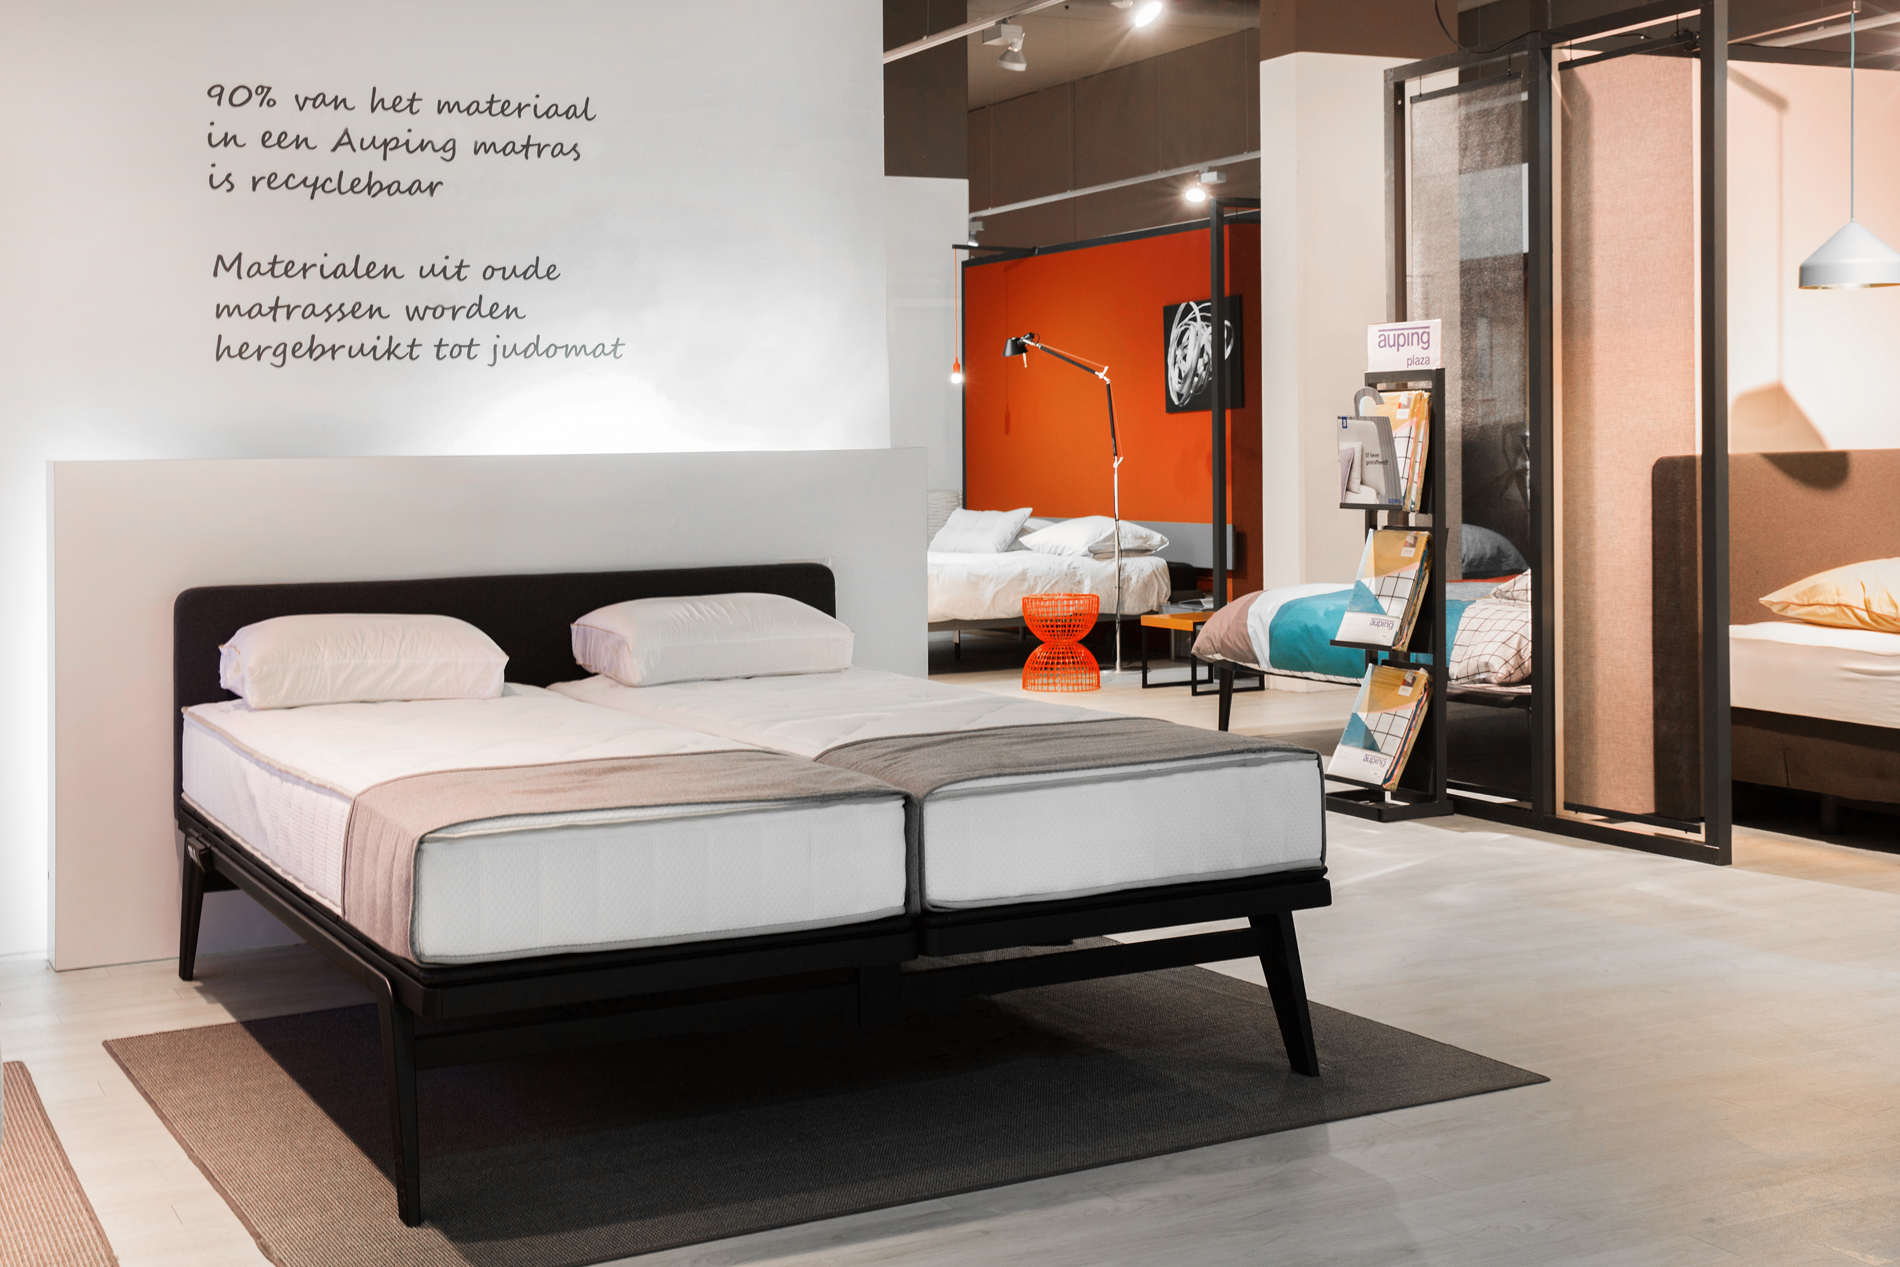 Auping Plaza Ede – Natural Vita Talalay Latex Mattress Store in Ede Gelderland